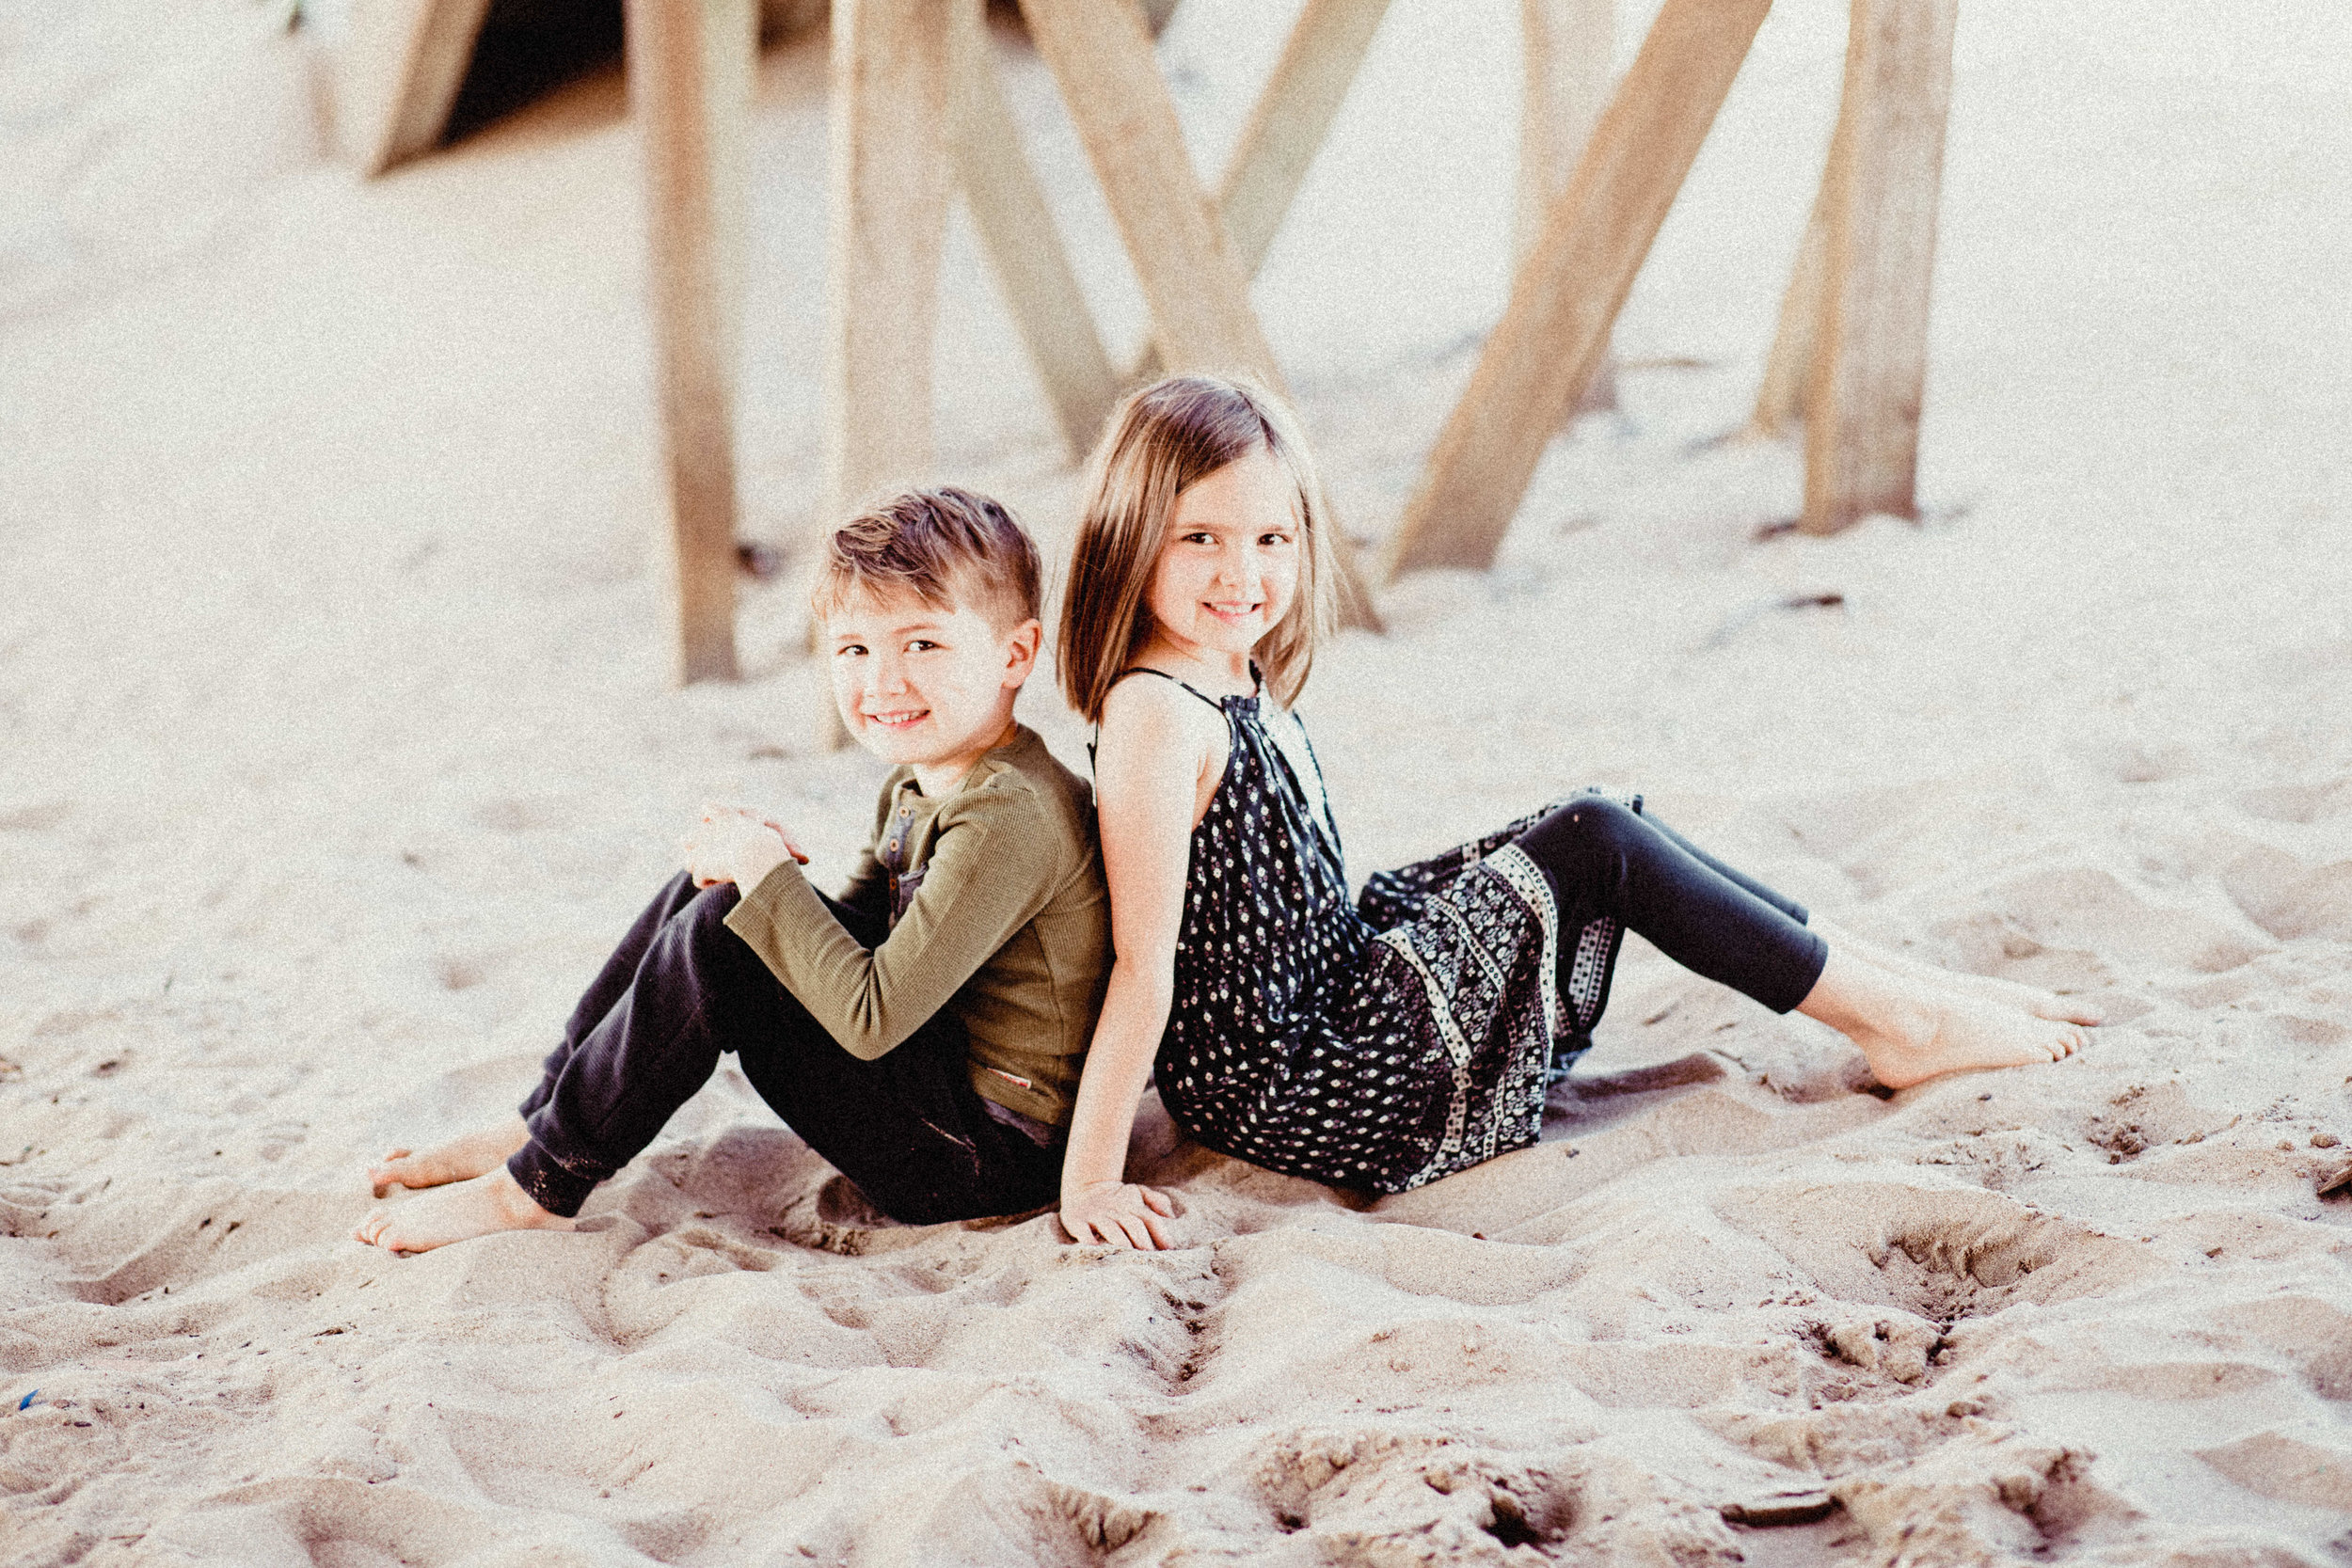 la manhatten beach photo shooting family portraits03.jpg